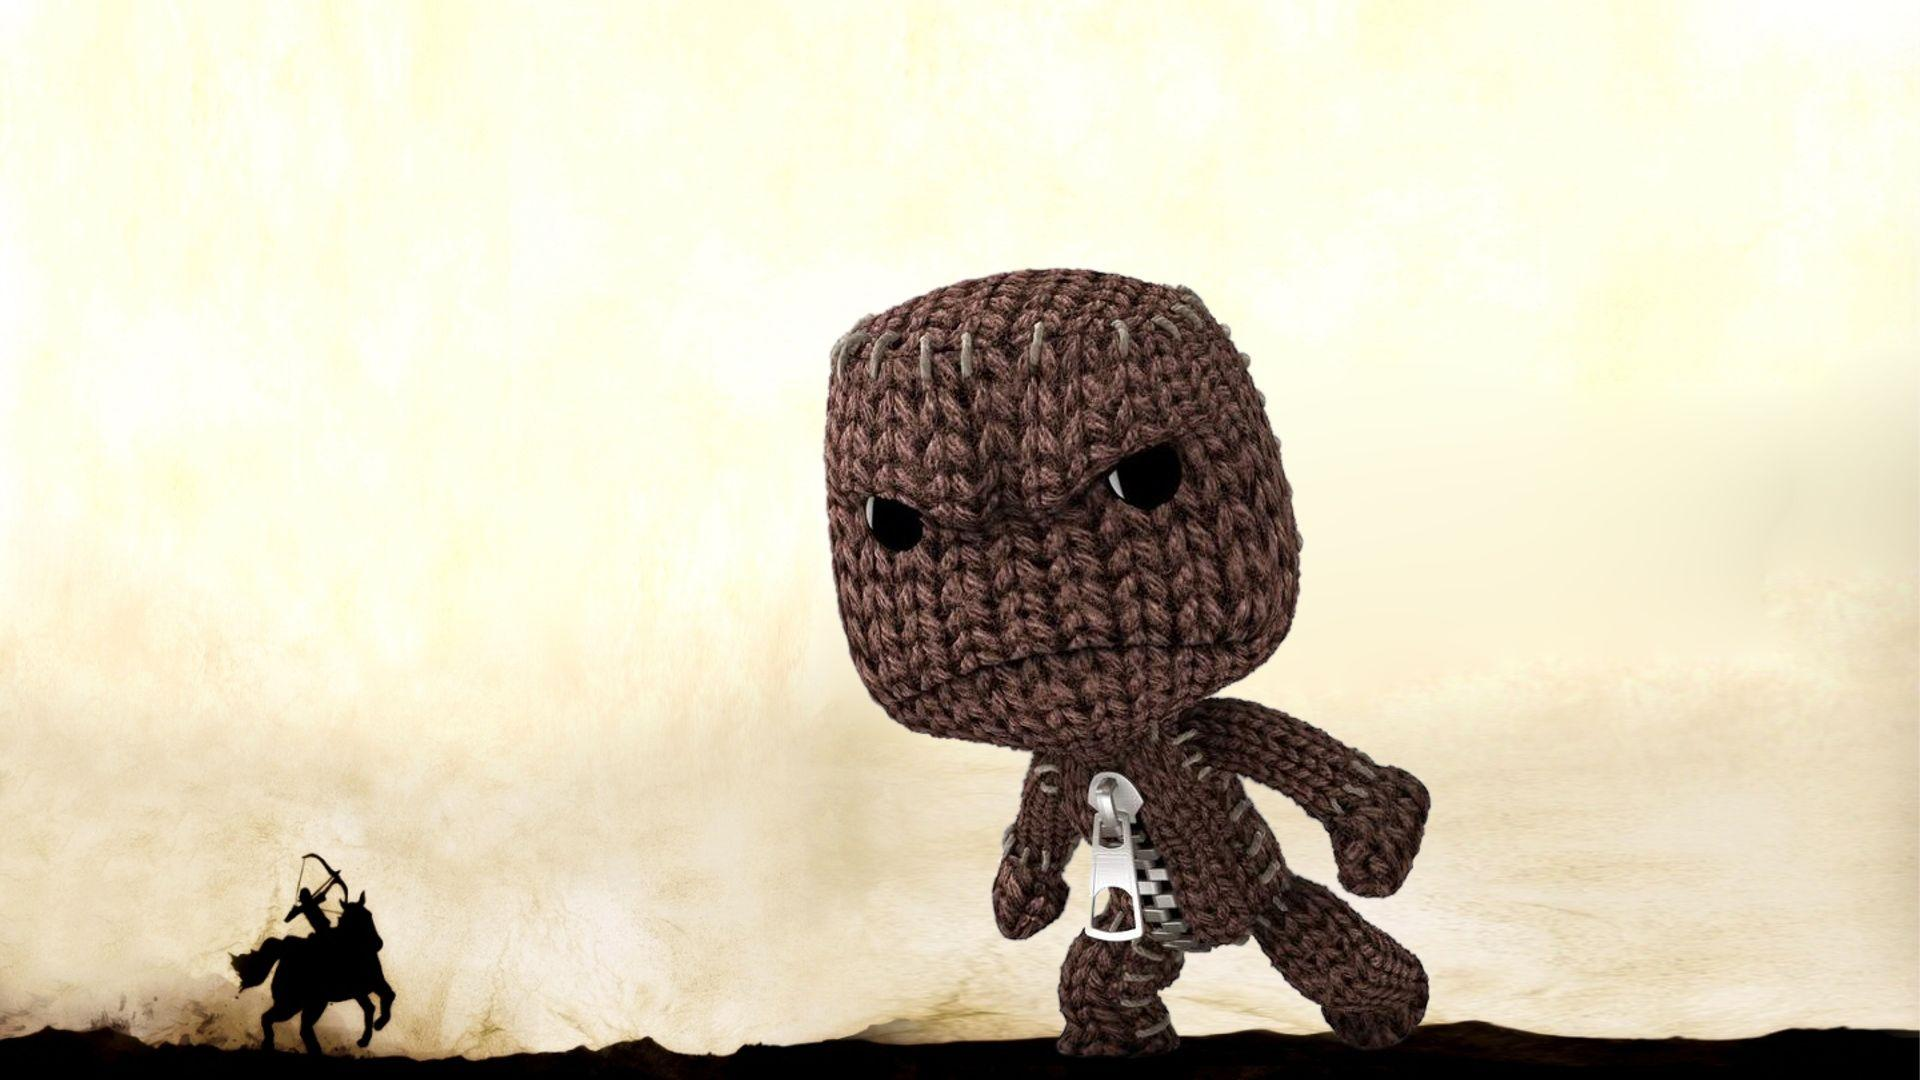 Image For > Little Big Planet Sackboy Wallpapers